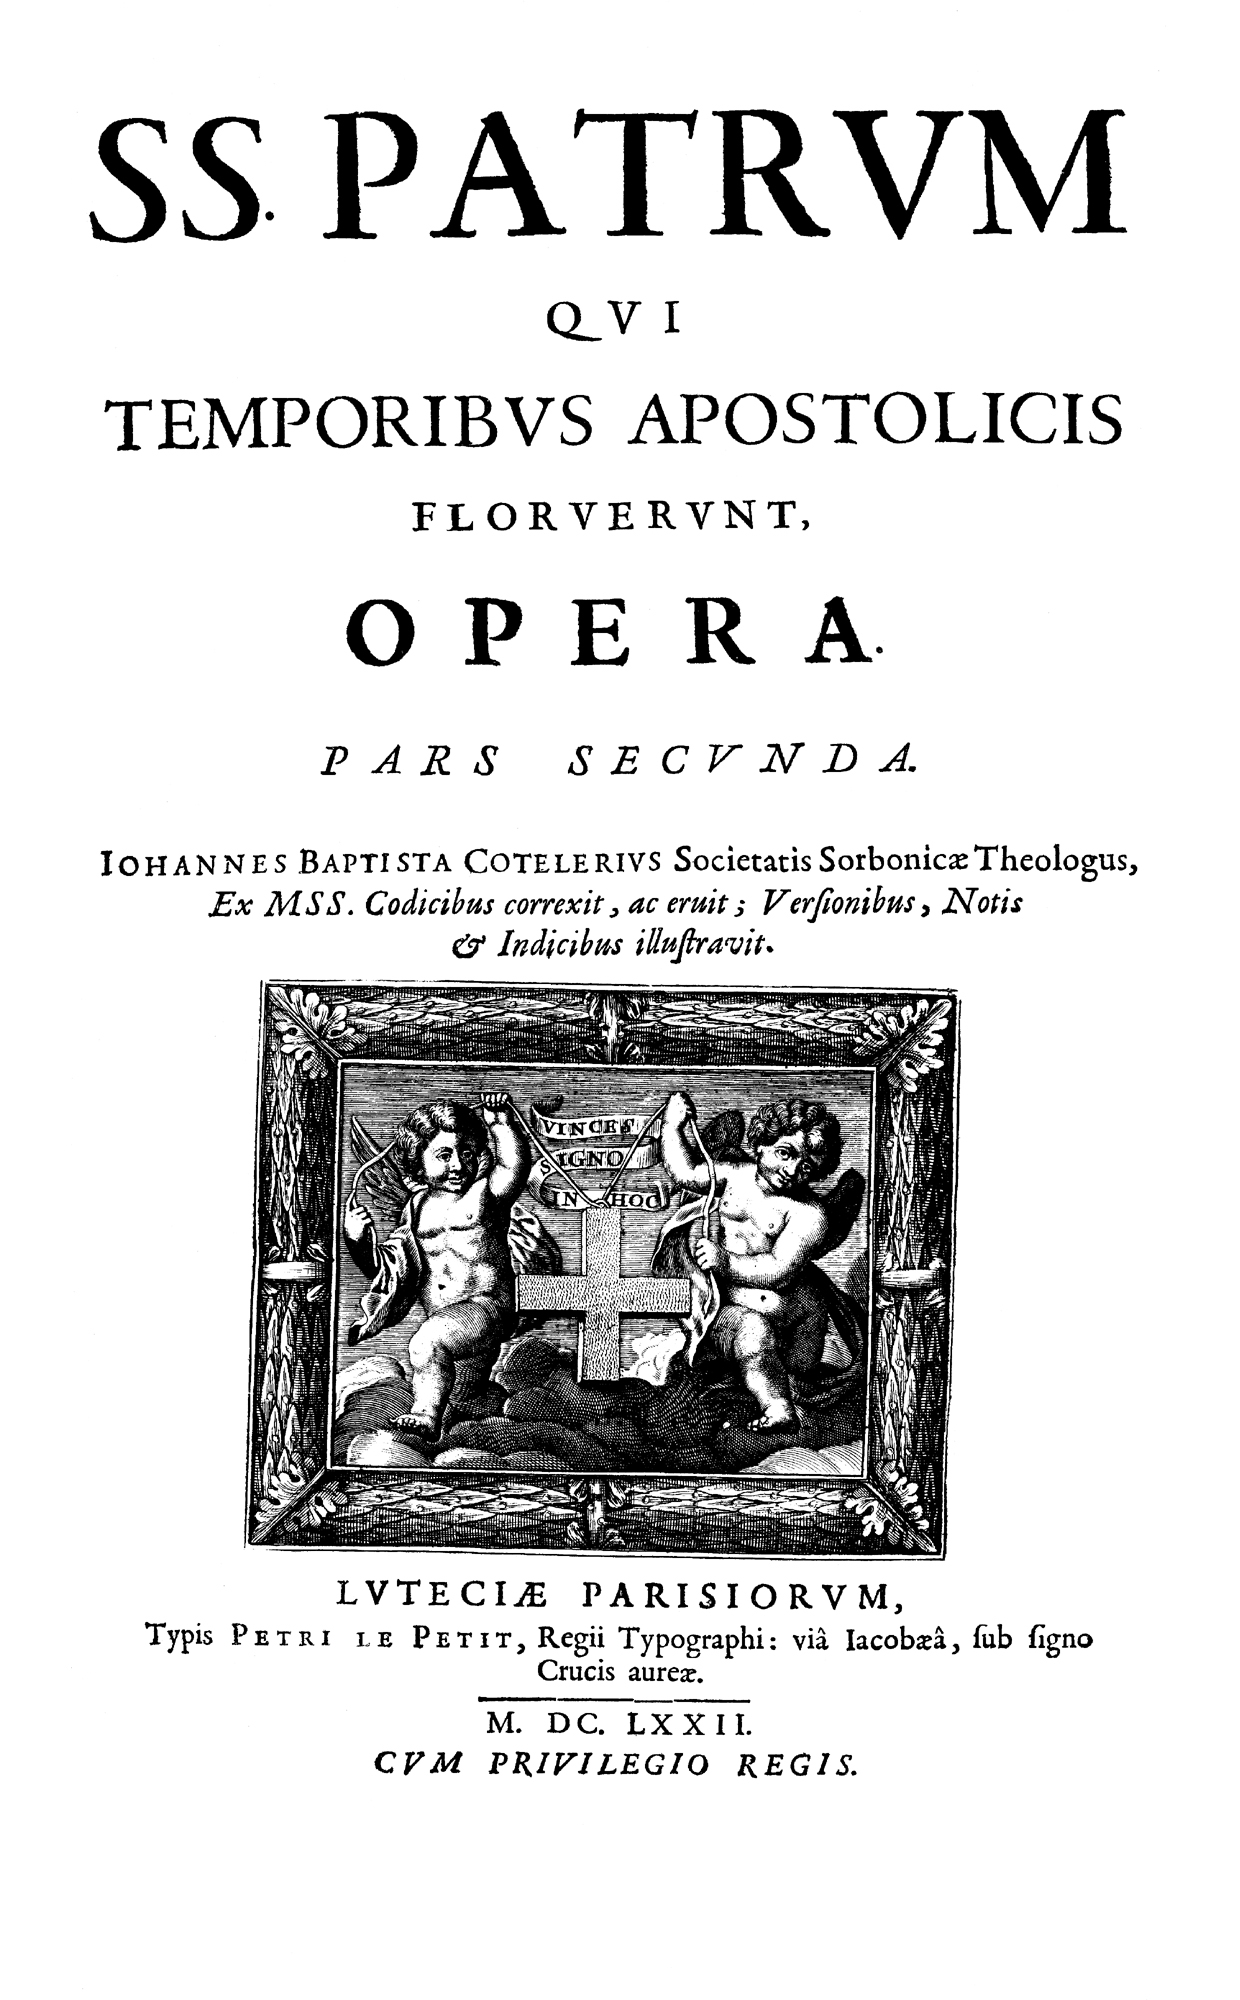 First Edition of the Apostolic Fathers